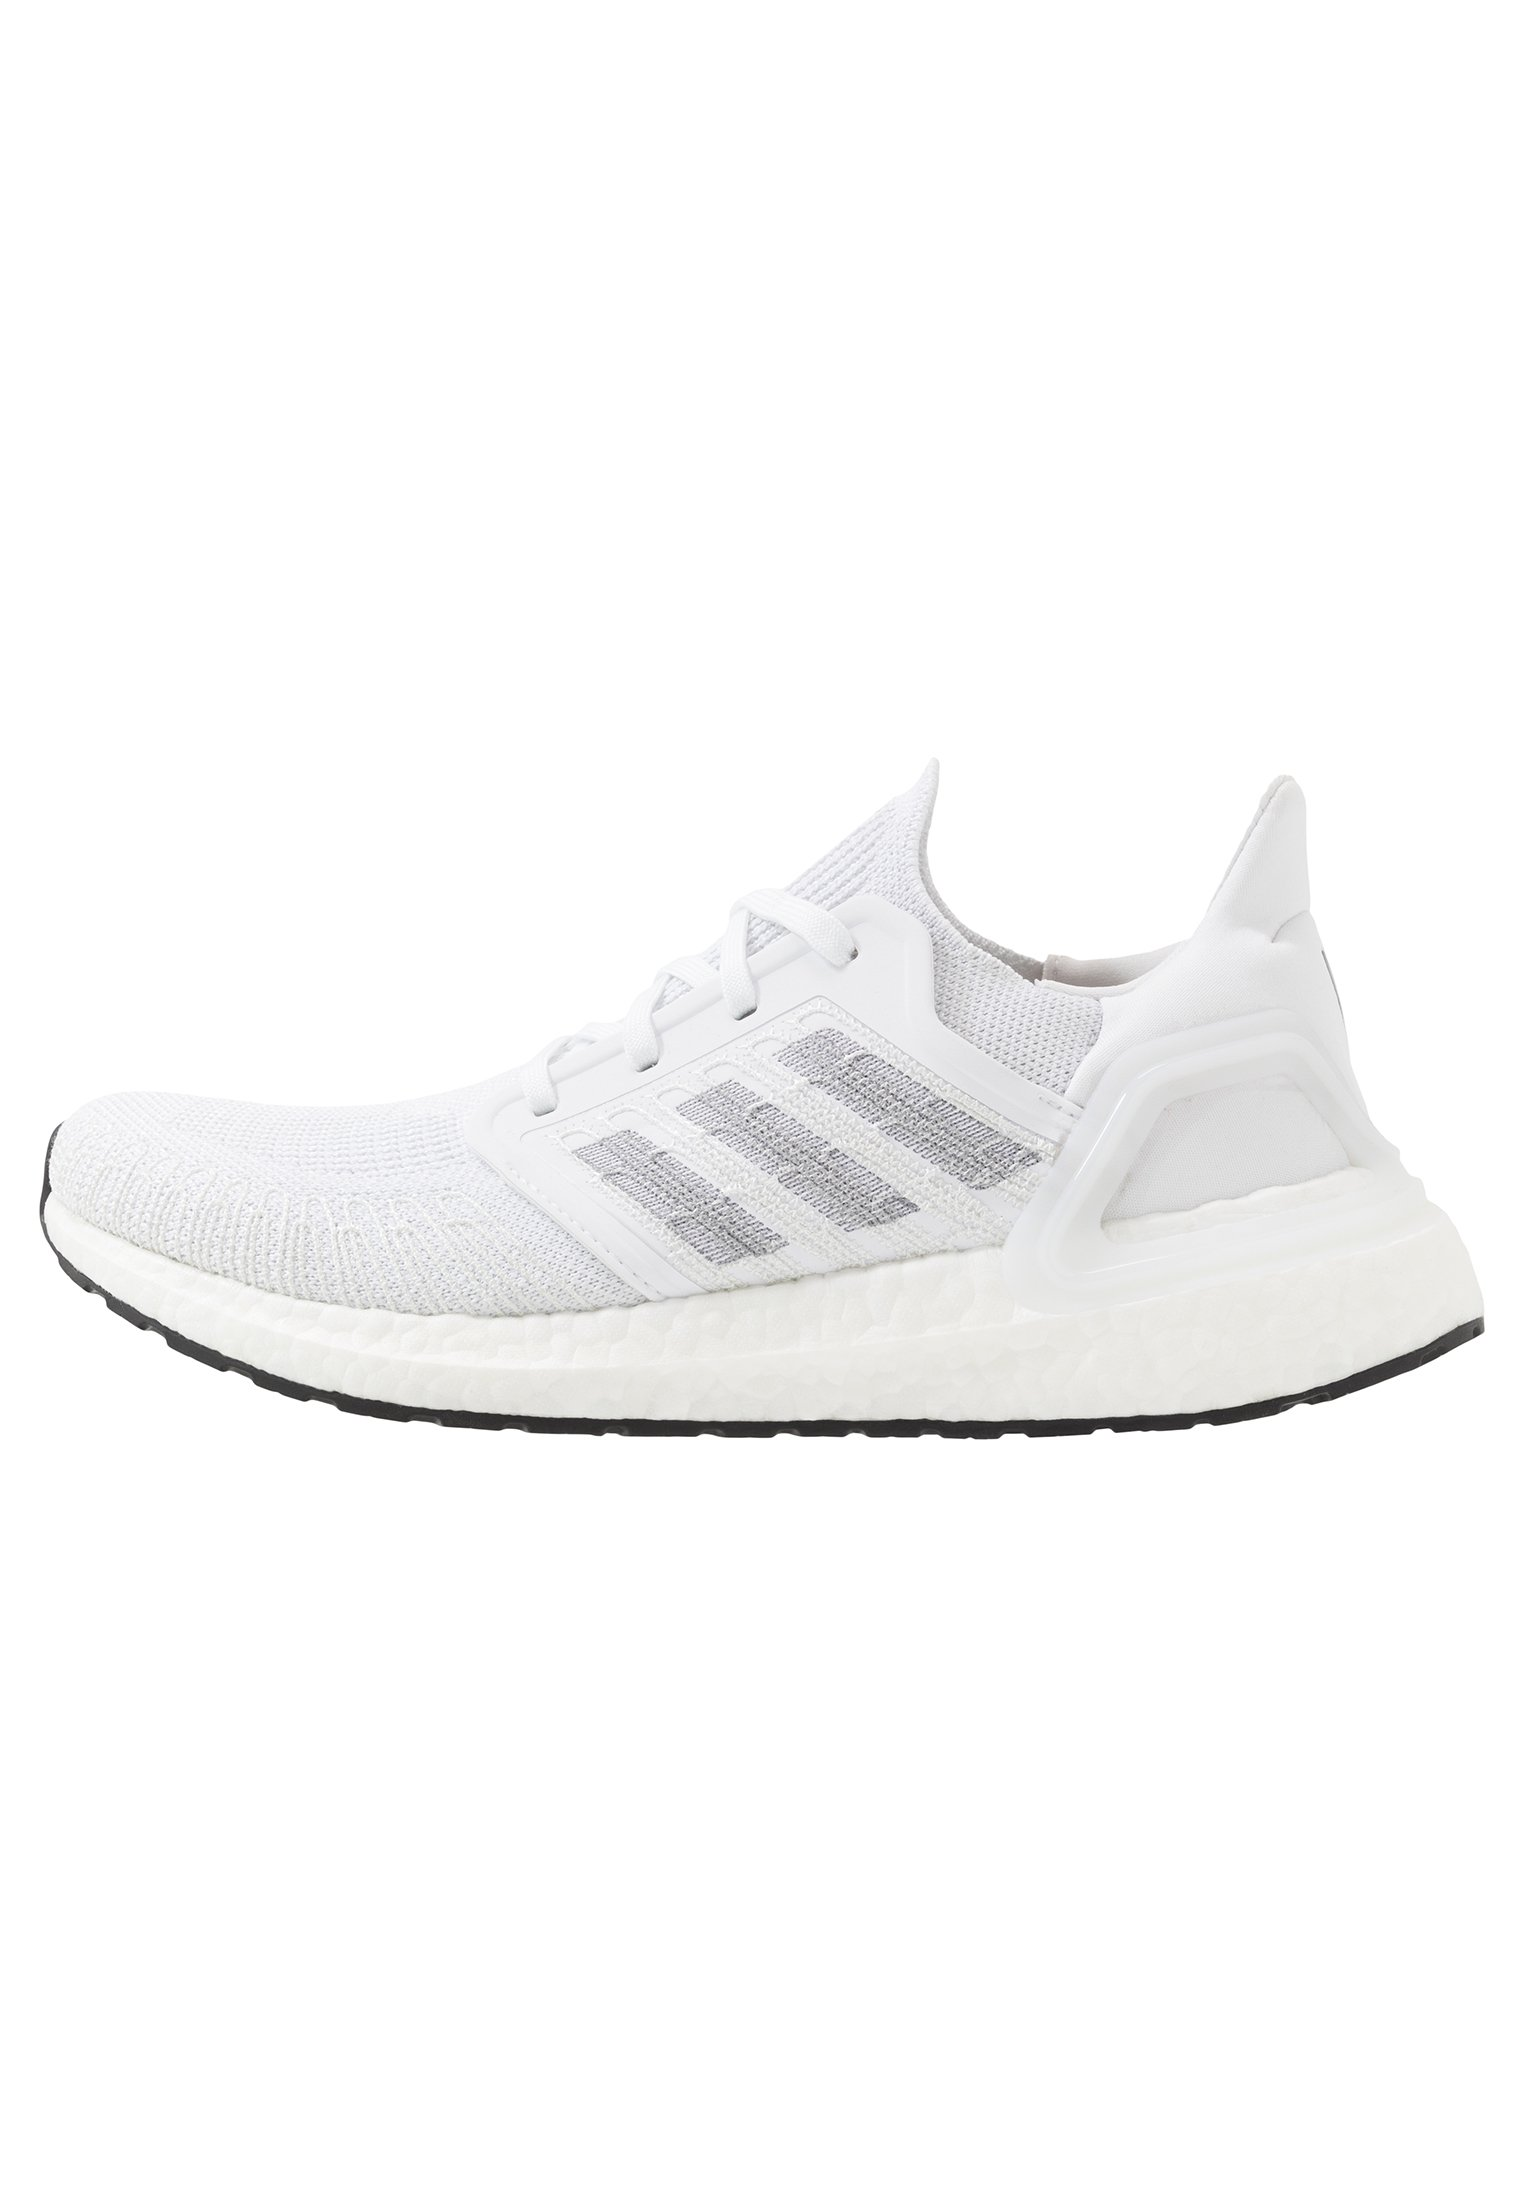 ULTRABOOST 20 PRIMEKNIT RUNNING SHOES Laufschuh Neutral footwear whitecore black